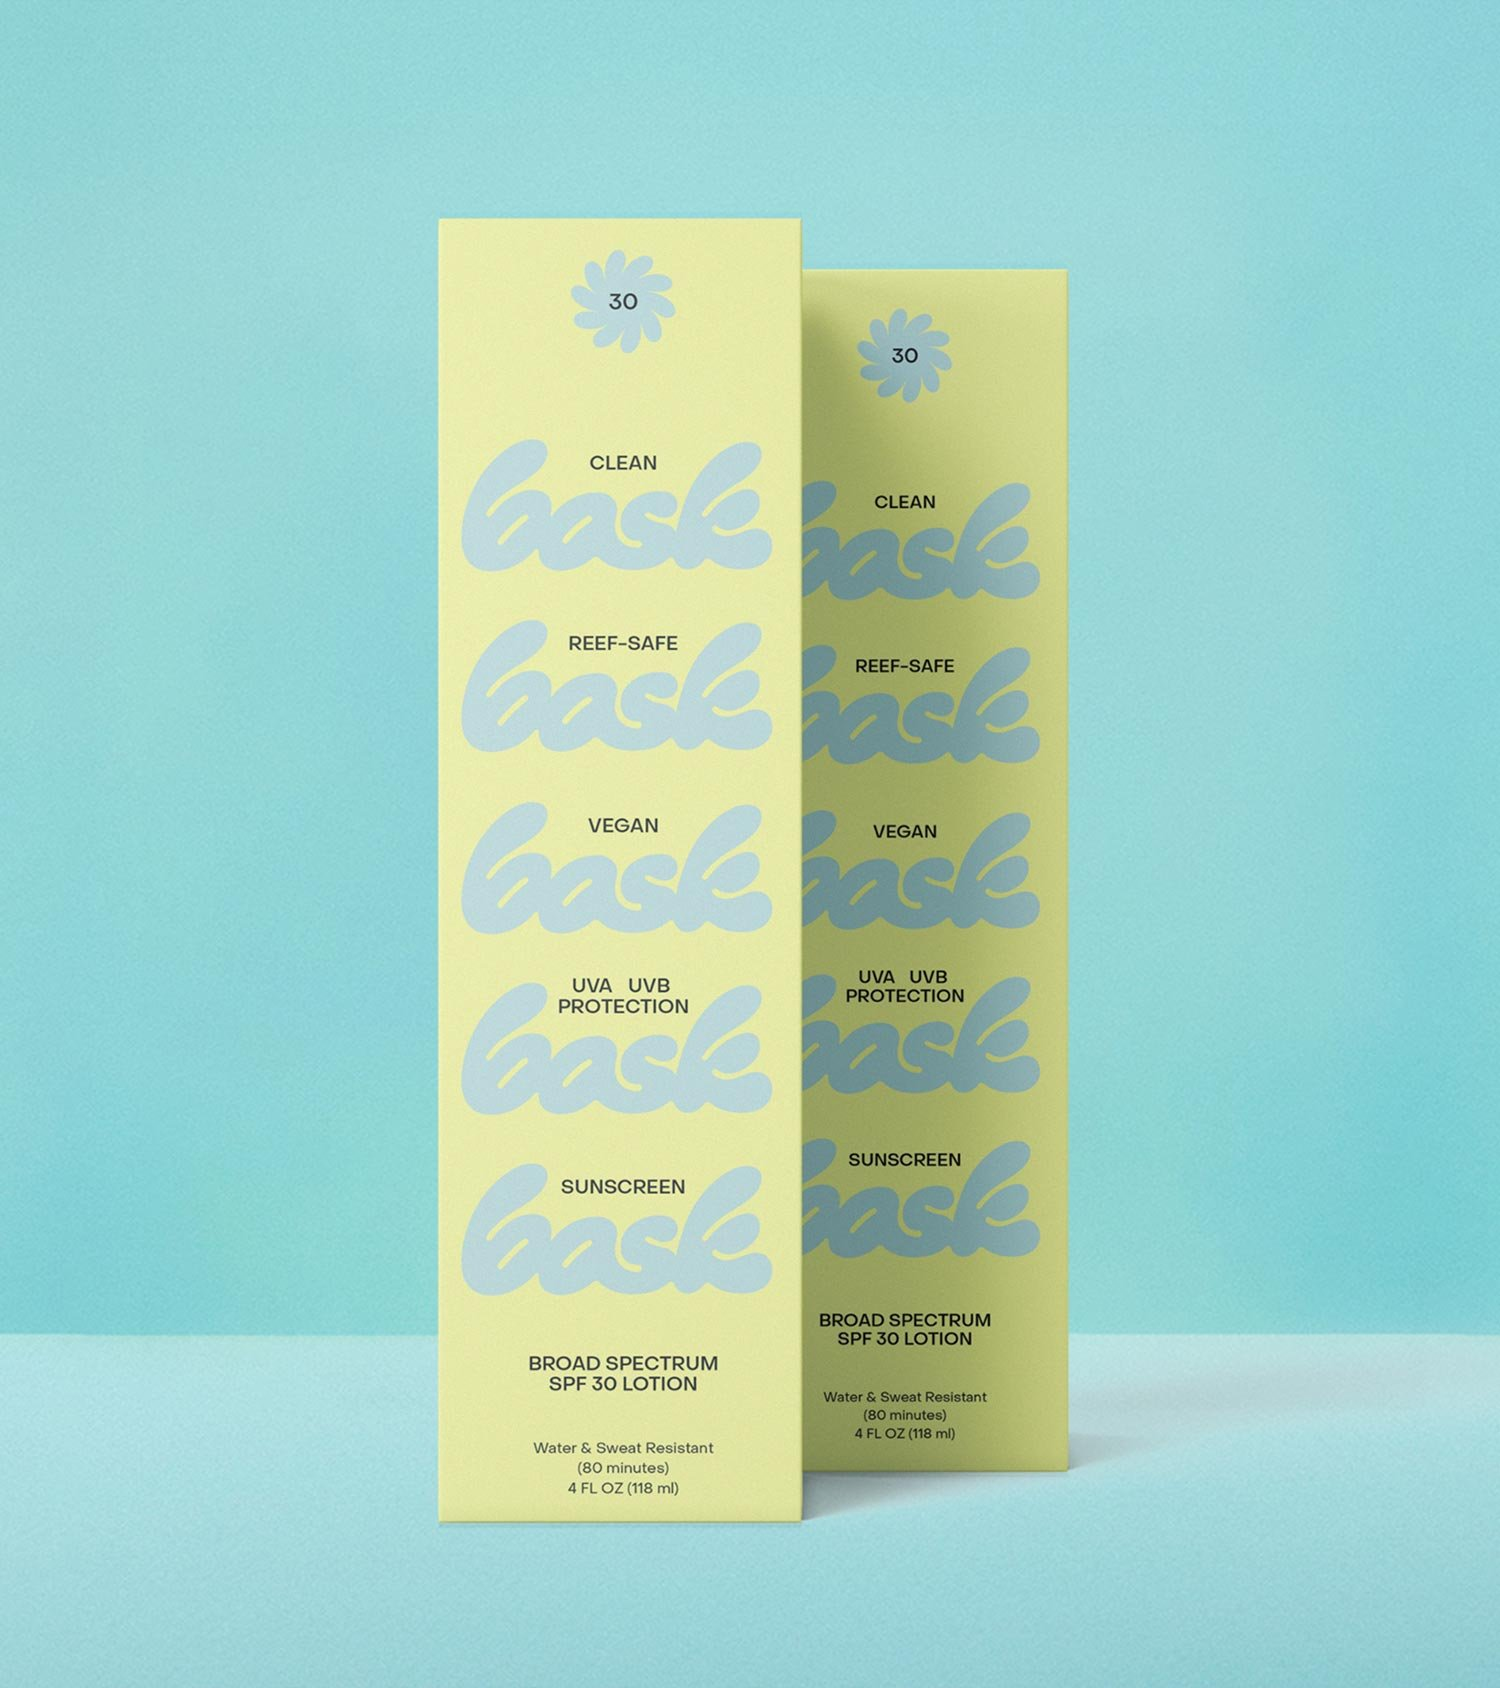 Bask Suncare SPF 30 Lotion Packaging, designed by RoAndCo